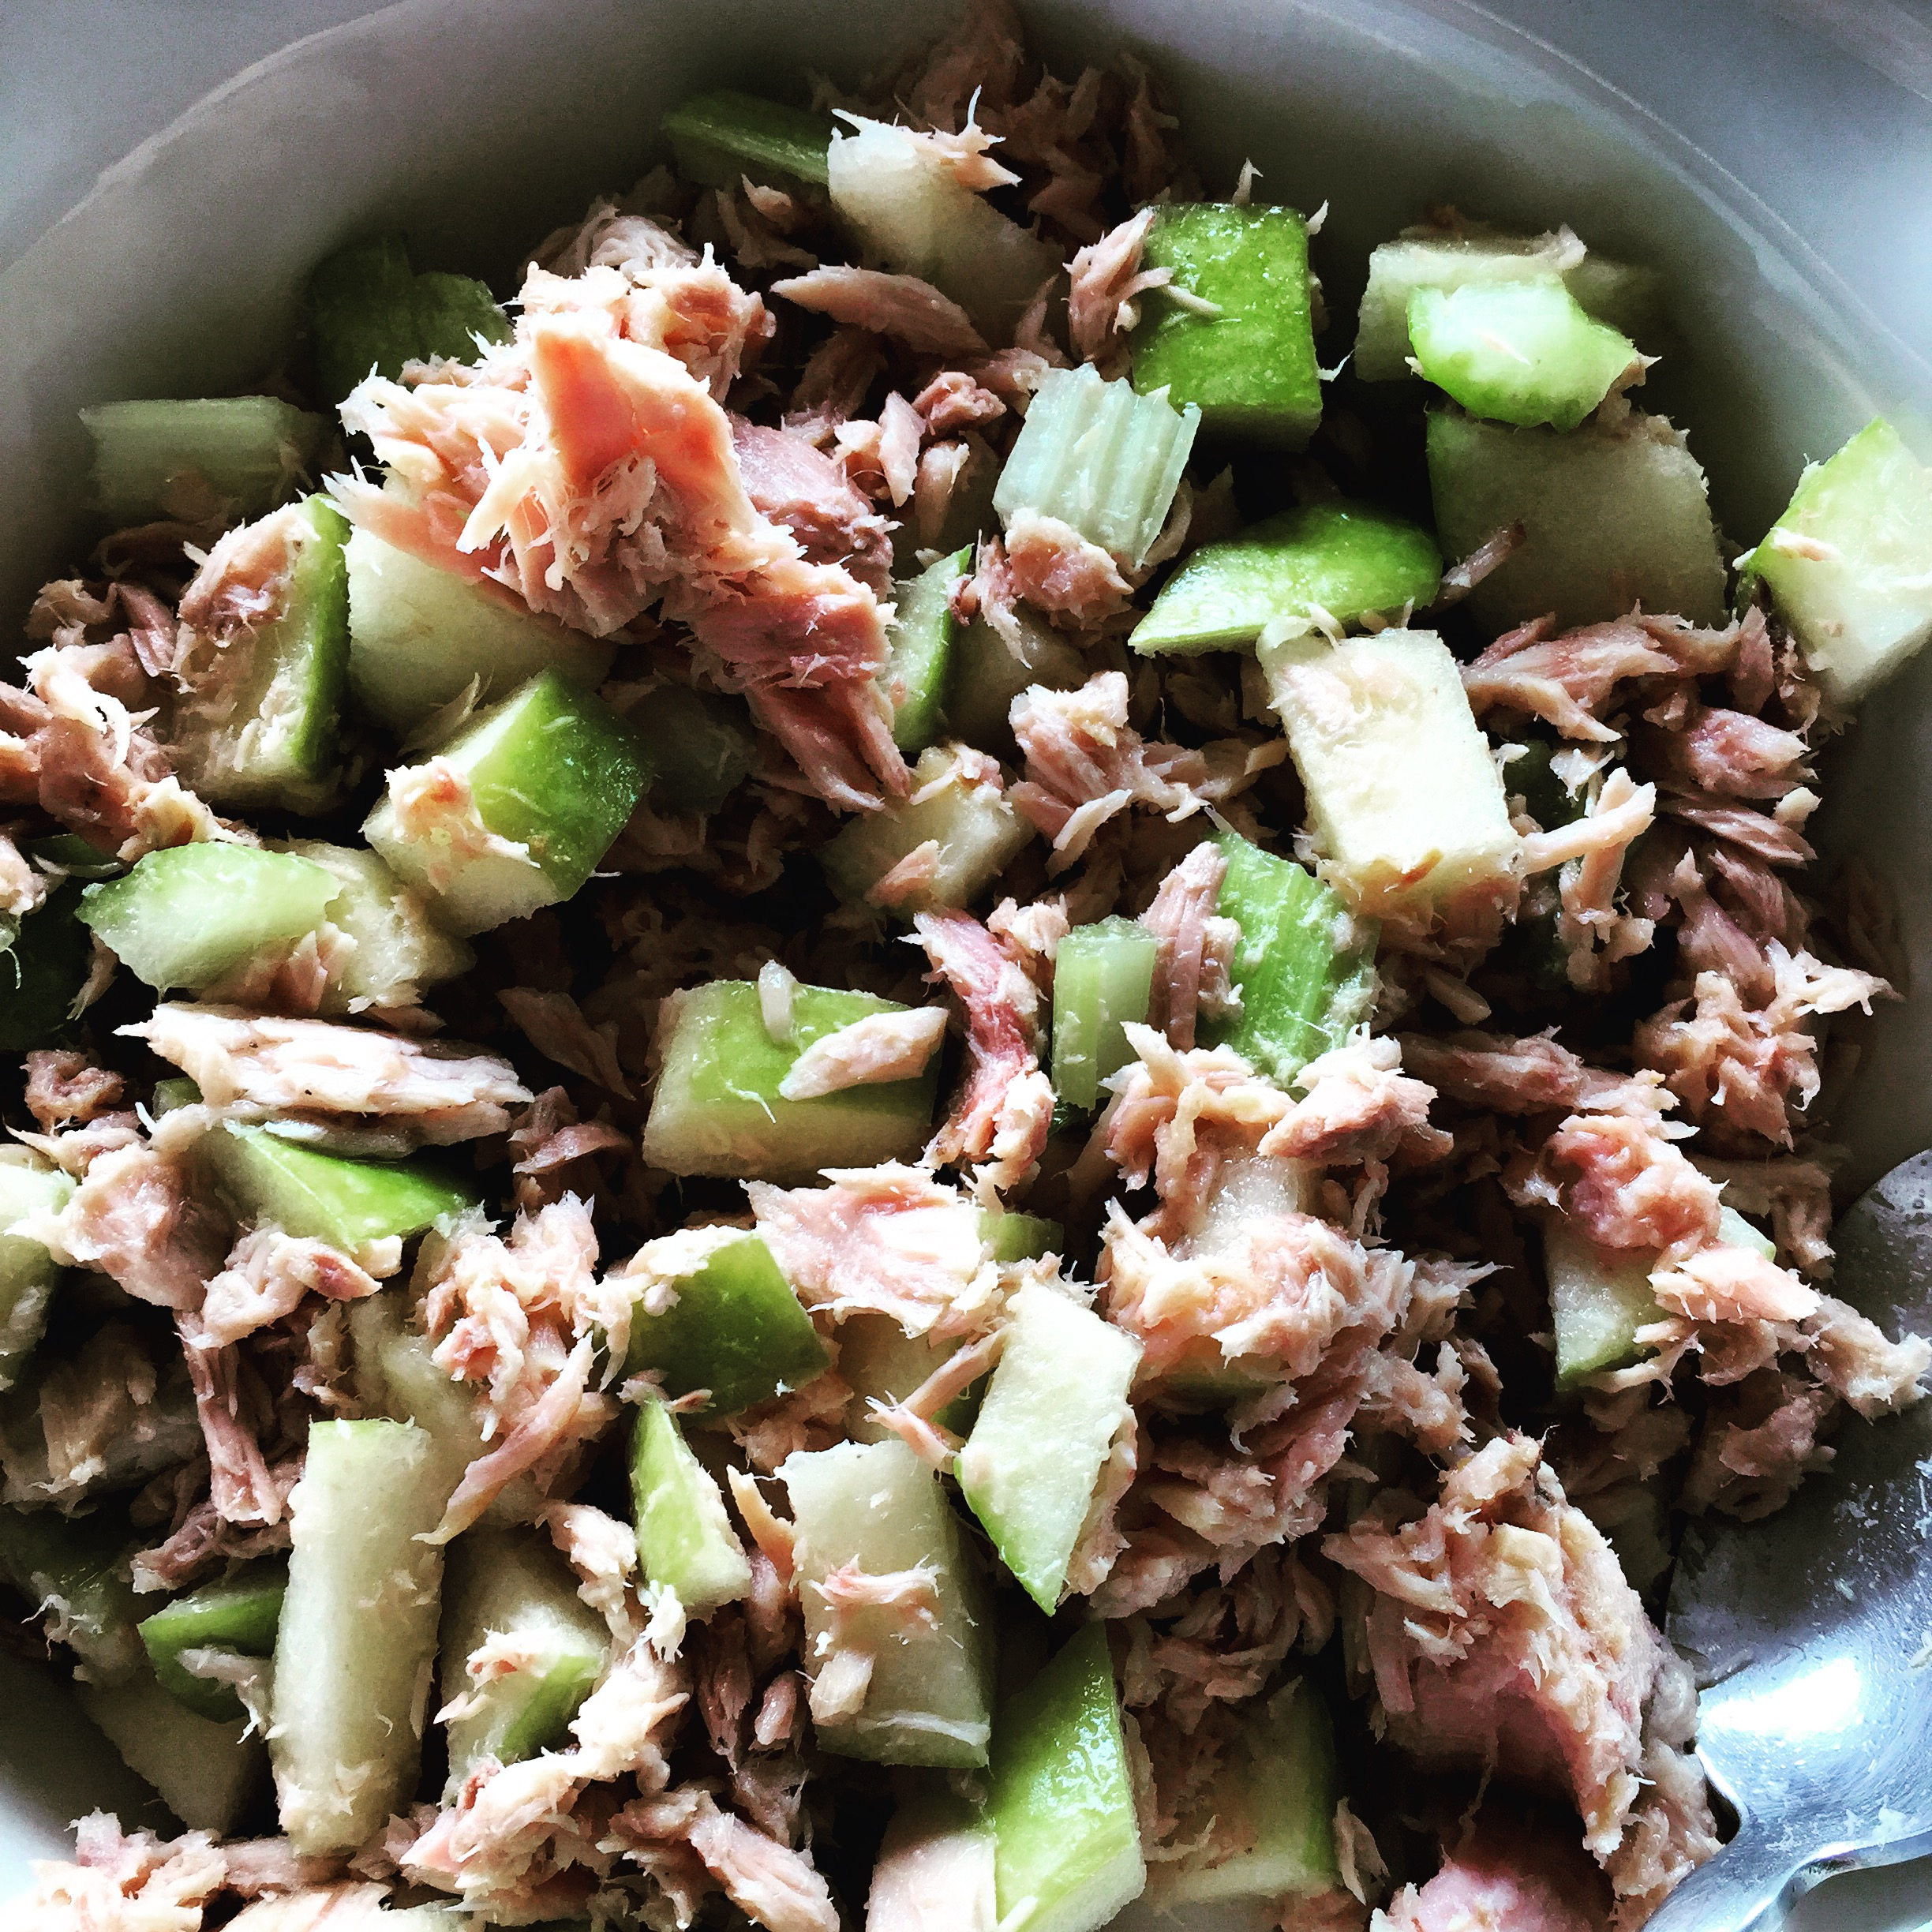 Cold Tuna Salad